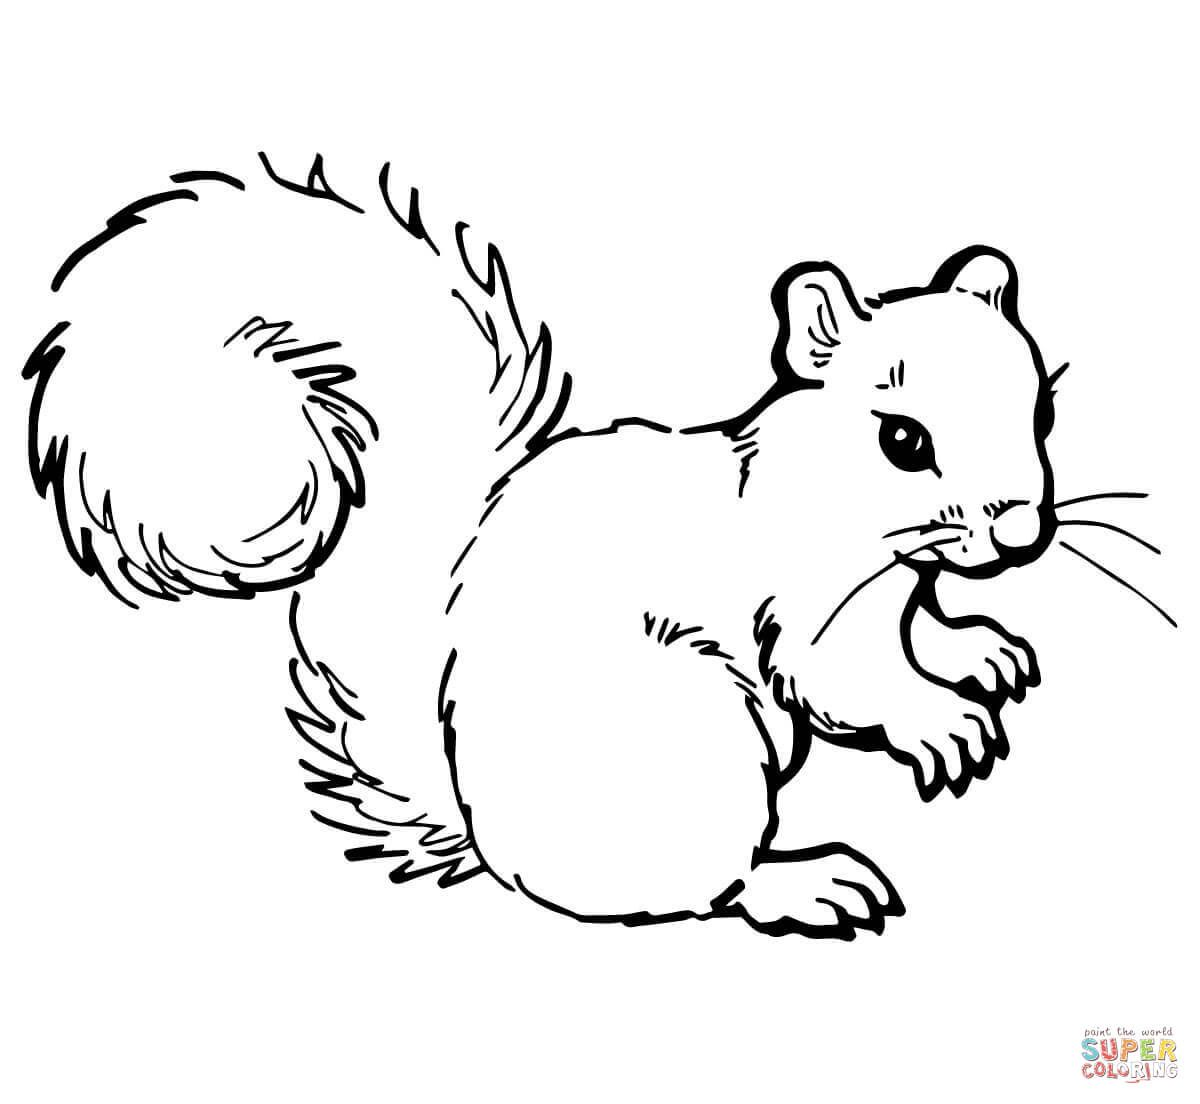 Grey Squirrel coloring page from Squirrels category